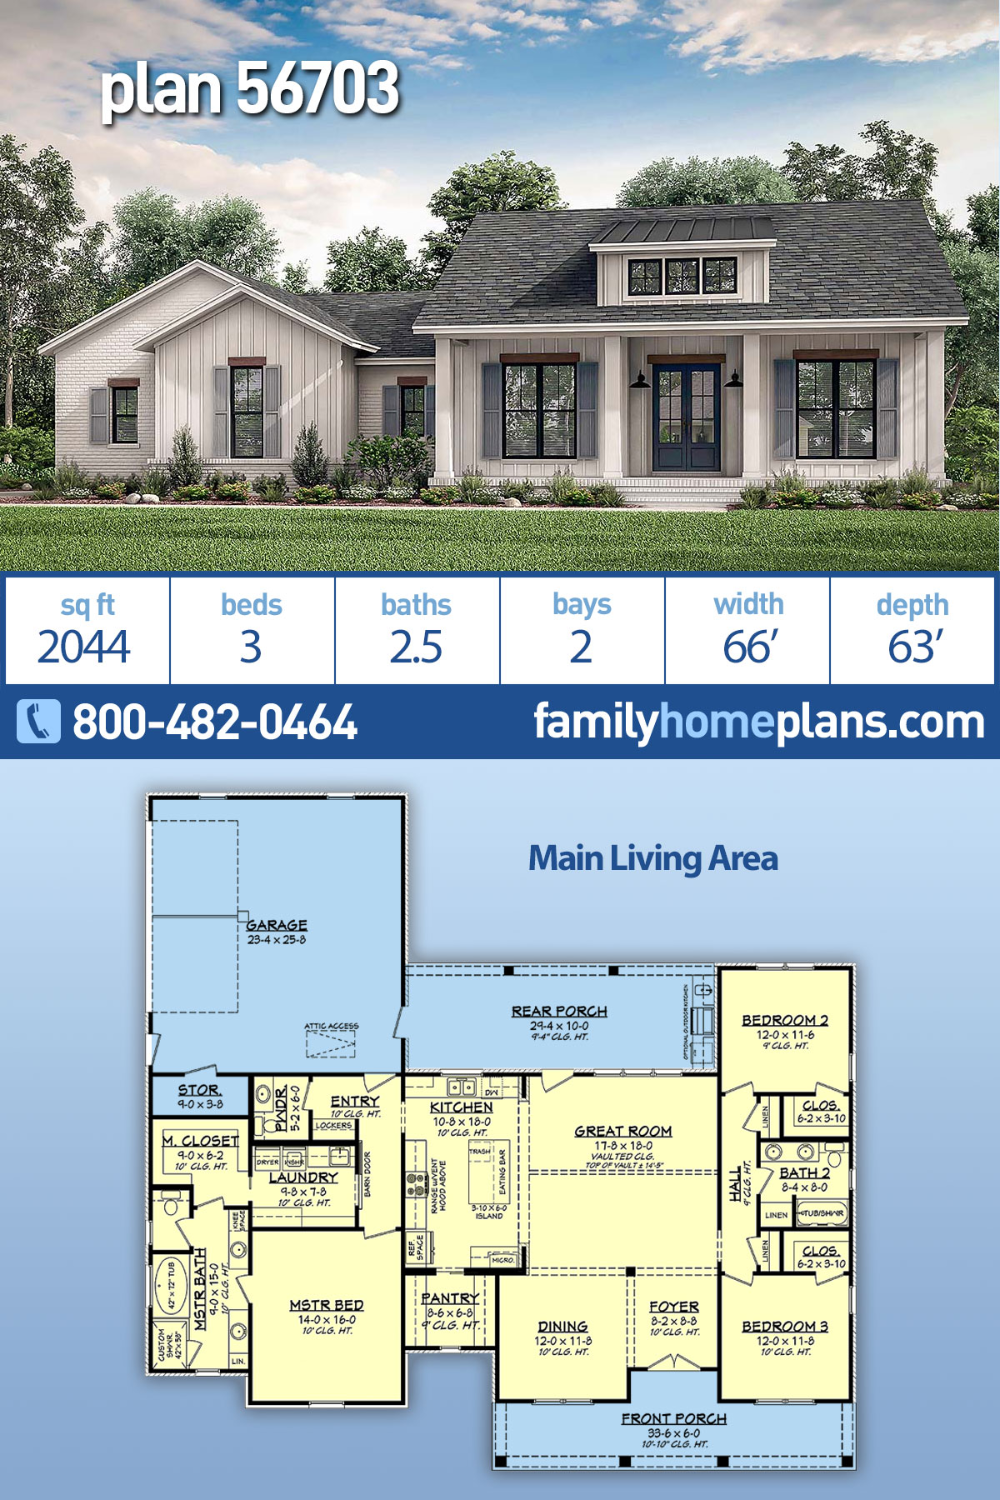 Photo of Traditional Style House Plan 56703 with 3 Bed, 3 Bath, 2 Car Garage